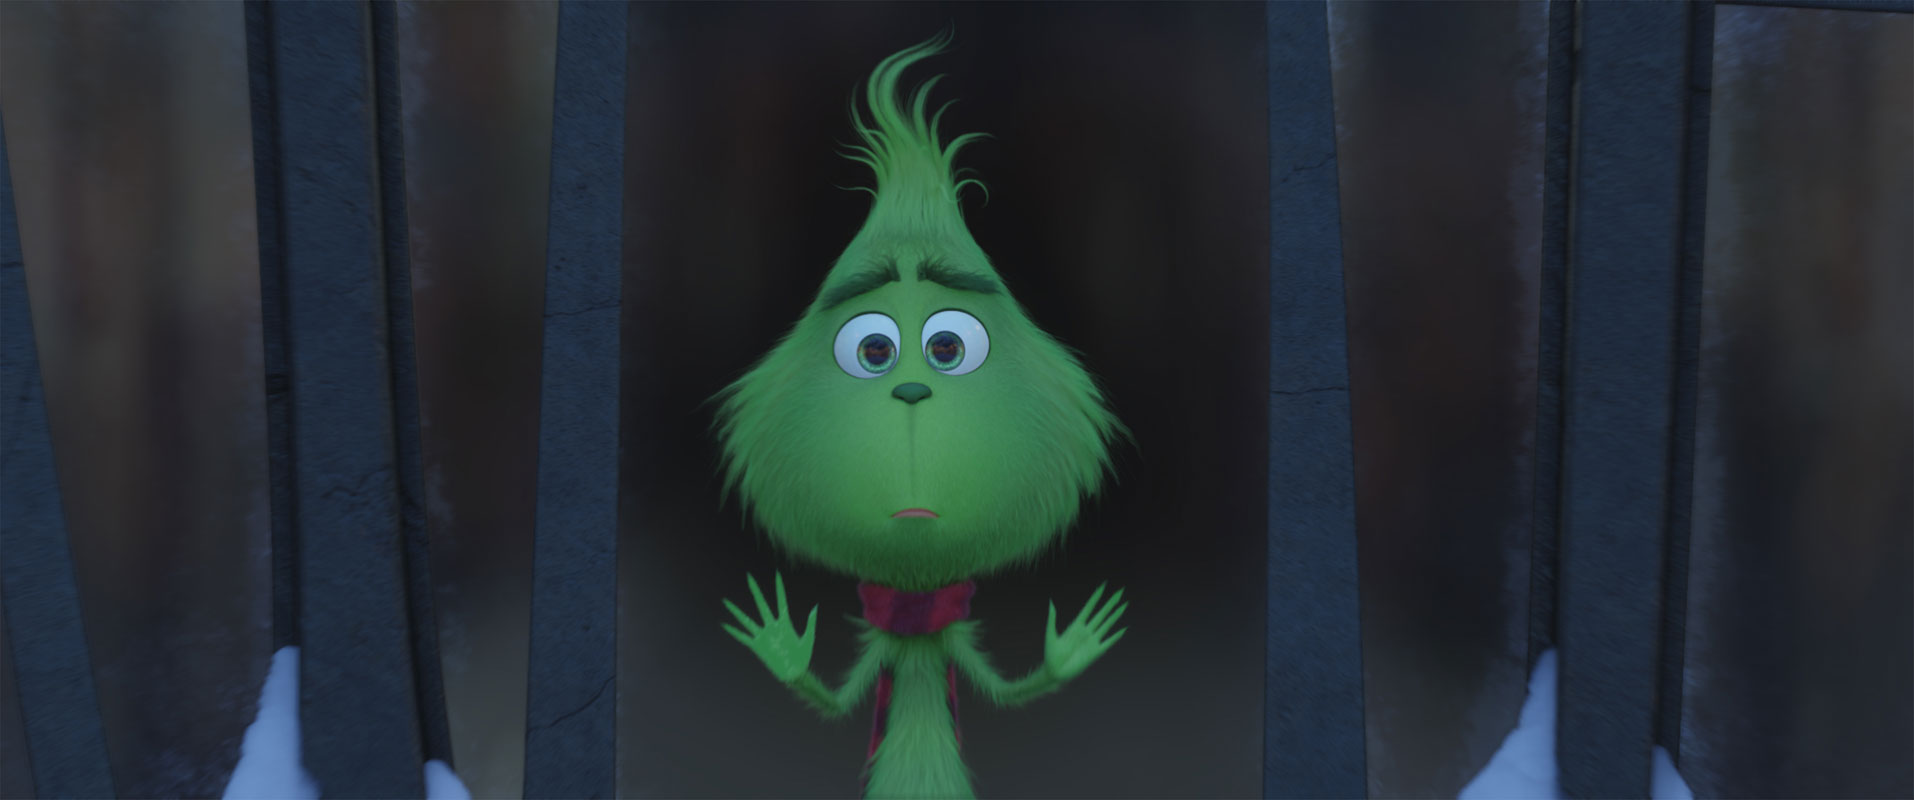 Image result for 鬼靈精 The Grinch 剧照